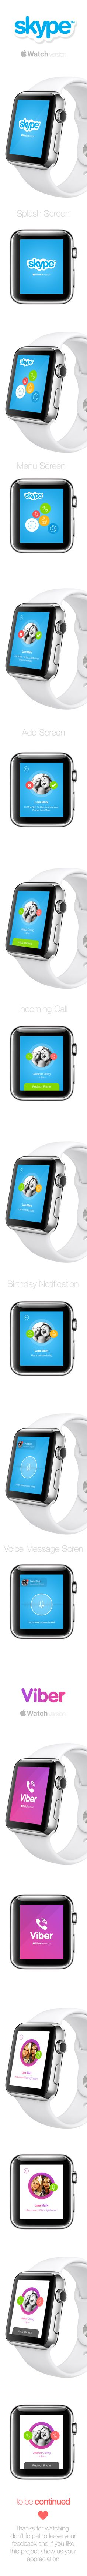 Apple Watch with Skype and Viber on Behance